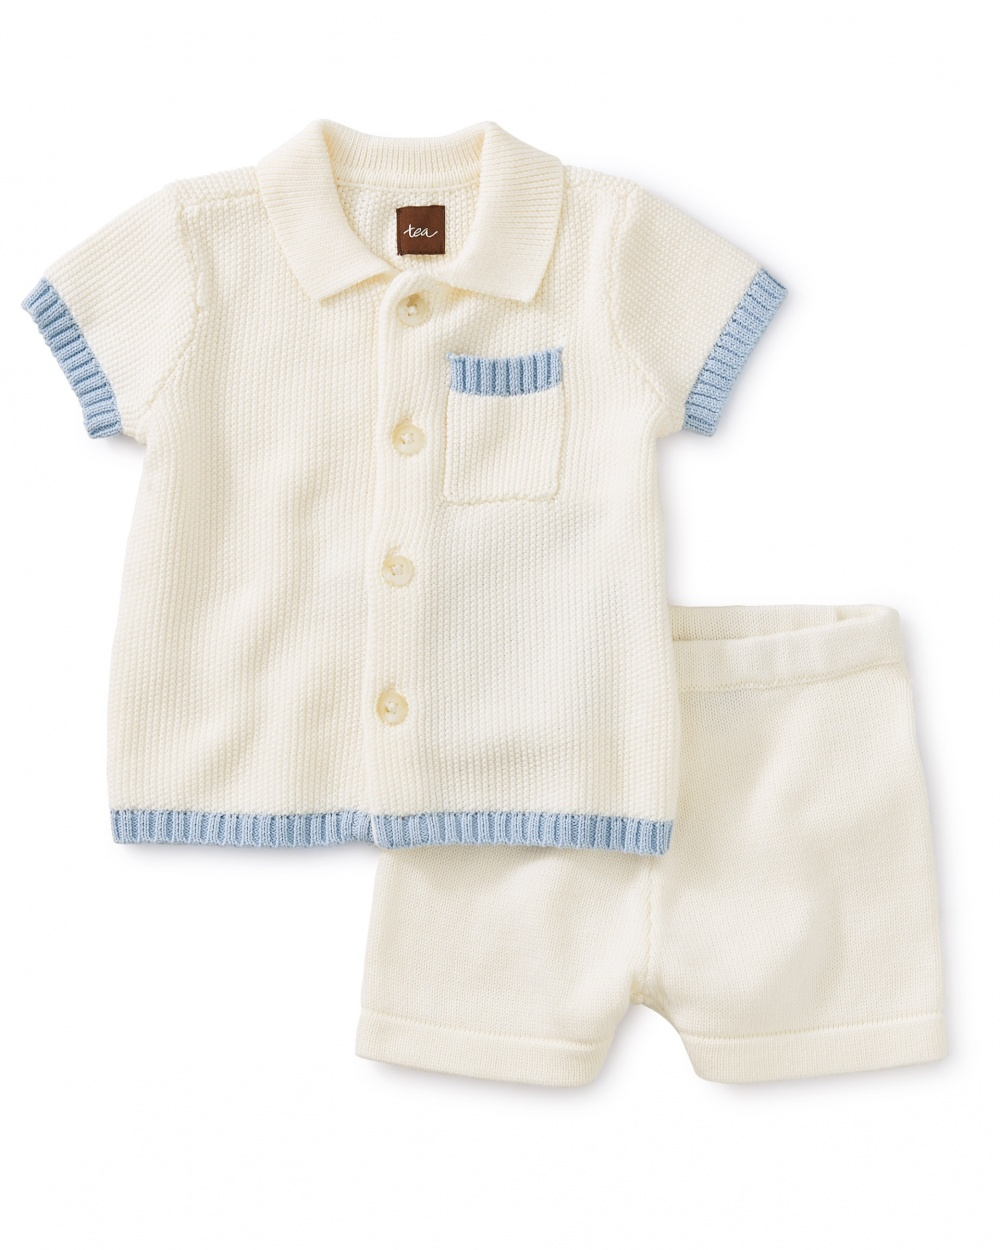 Sussex Boy Sweater Set